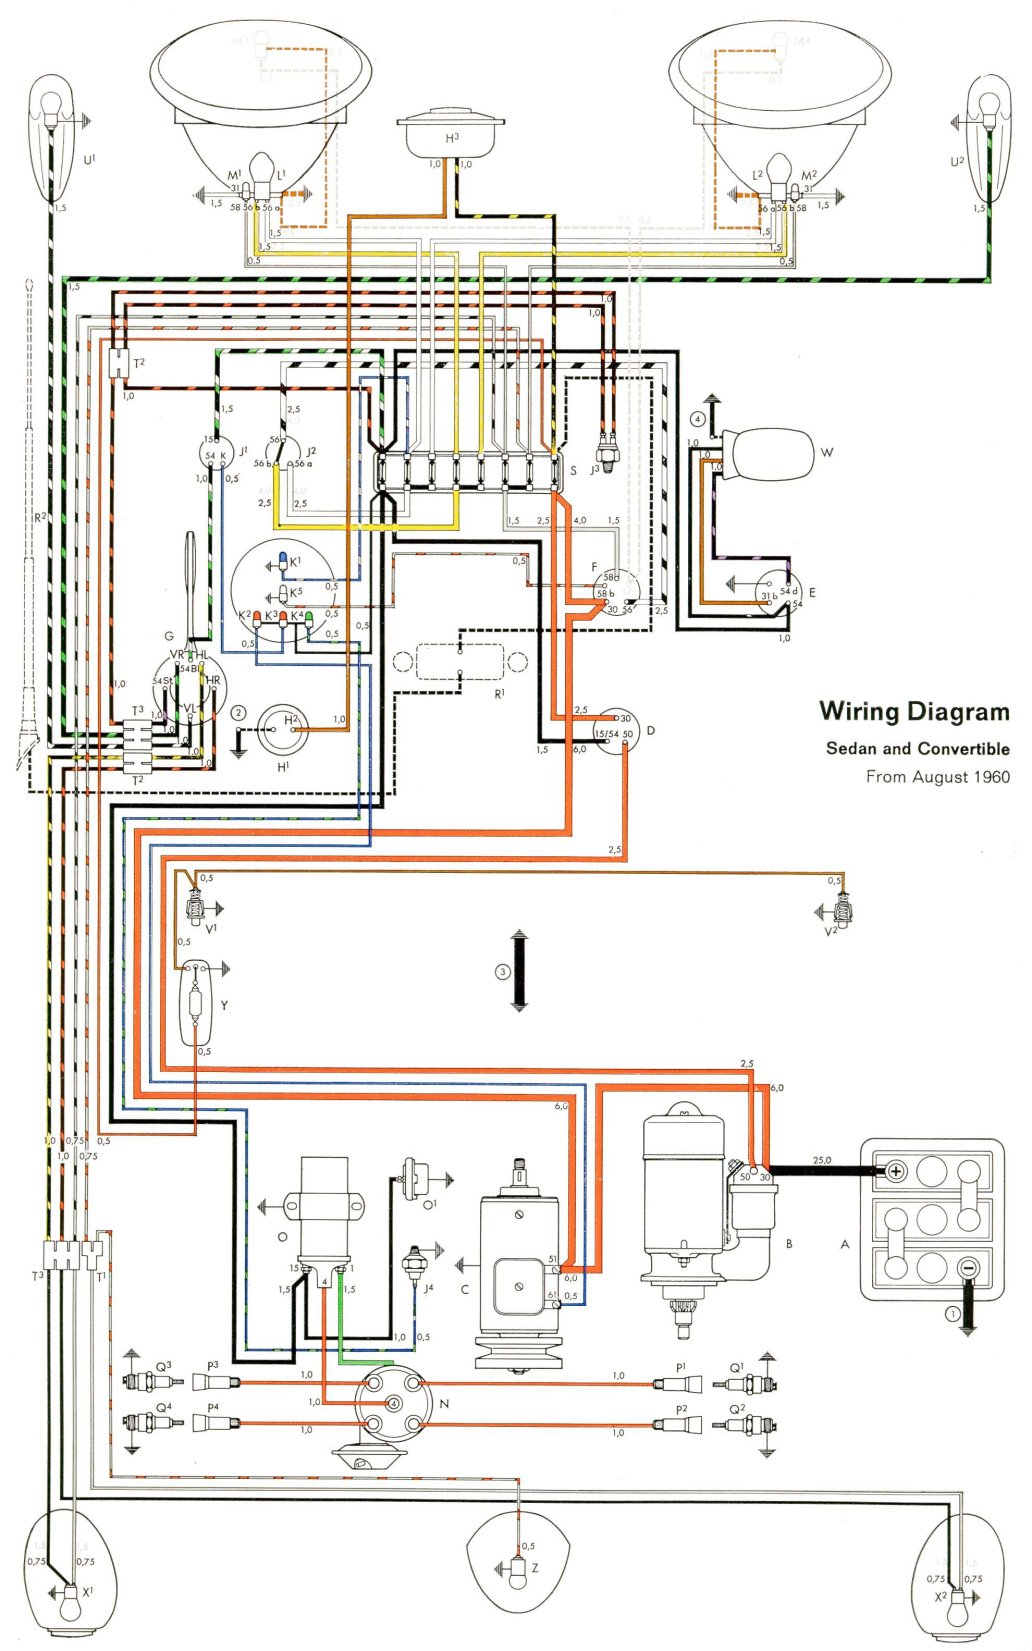 Viewtopic moreover Volkswagen Turn Signal Switch Wiring Diagram besides 67 Chrysler Window Motor Wiring Diagram in addition 1965 Bug Wiring Diagram besides School Bus Engine  partment Diagram. on 1967 volkswagen bus wiring schematic